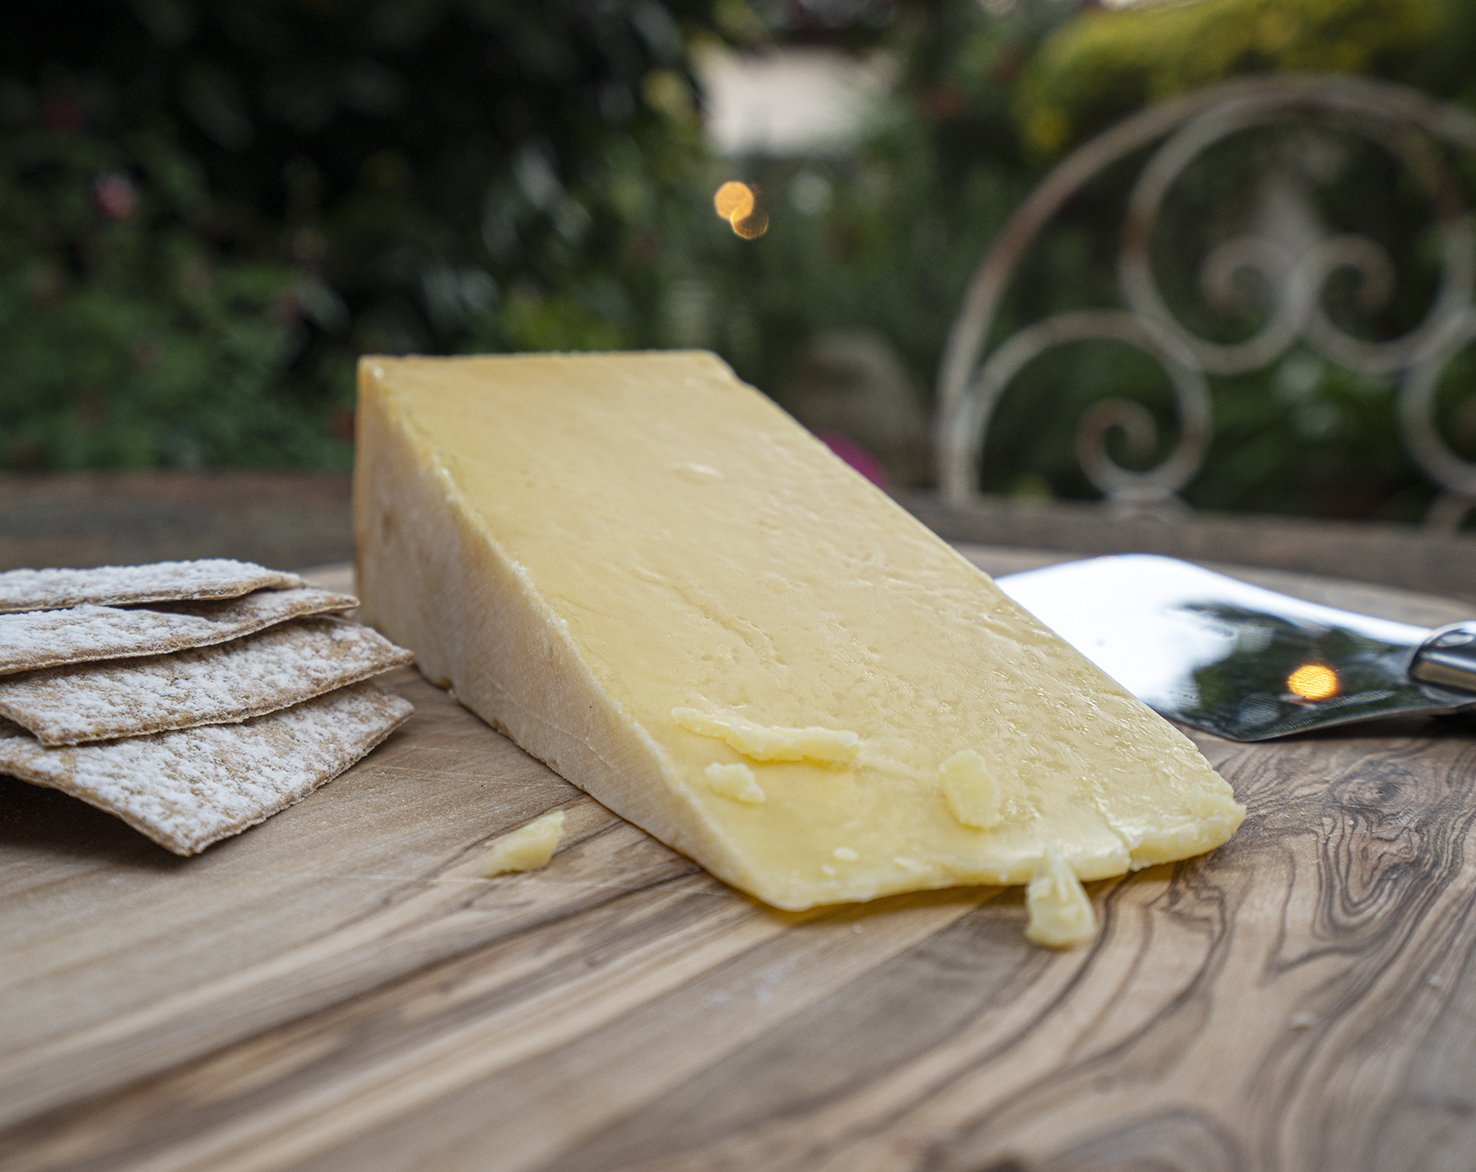 Westcombe Cheddar for sale - Parson's Nose